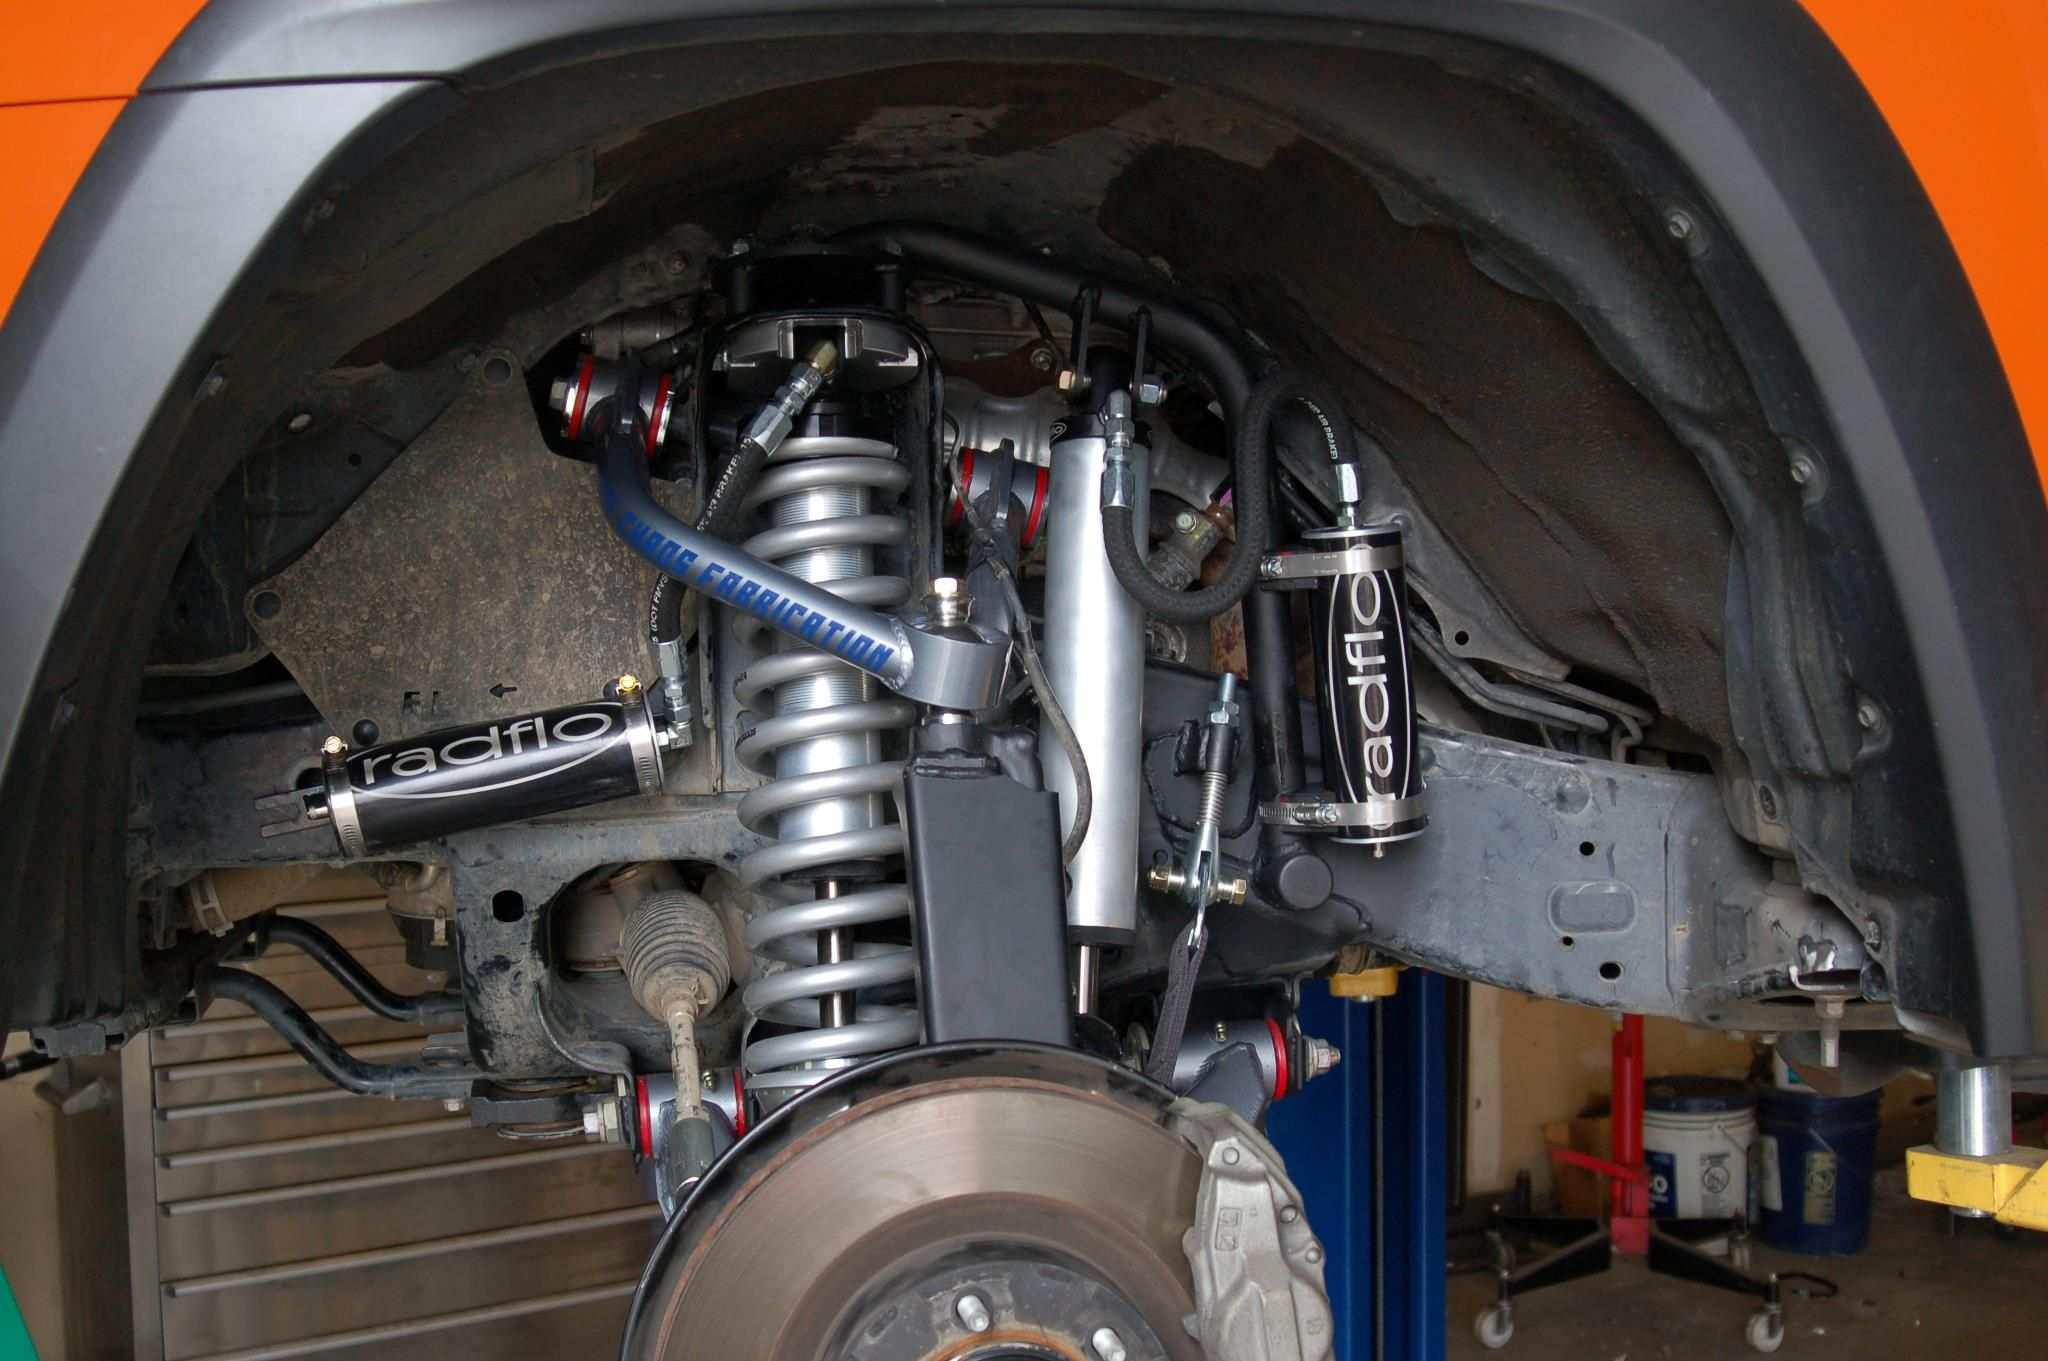 The 4Runner is all buttoned up with it's new suspension